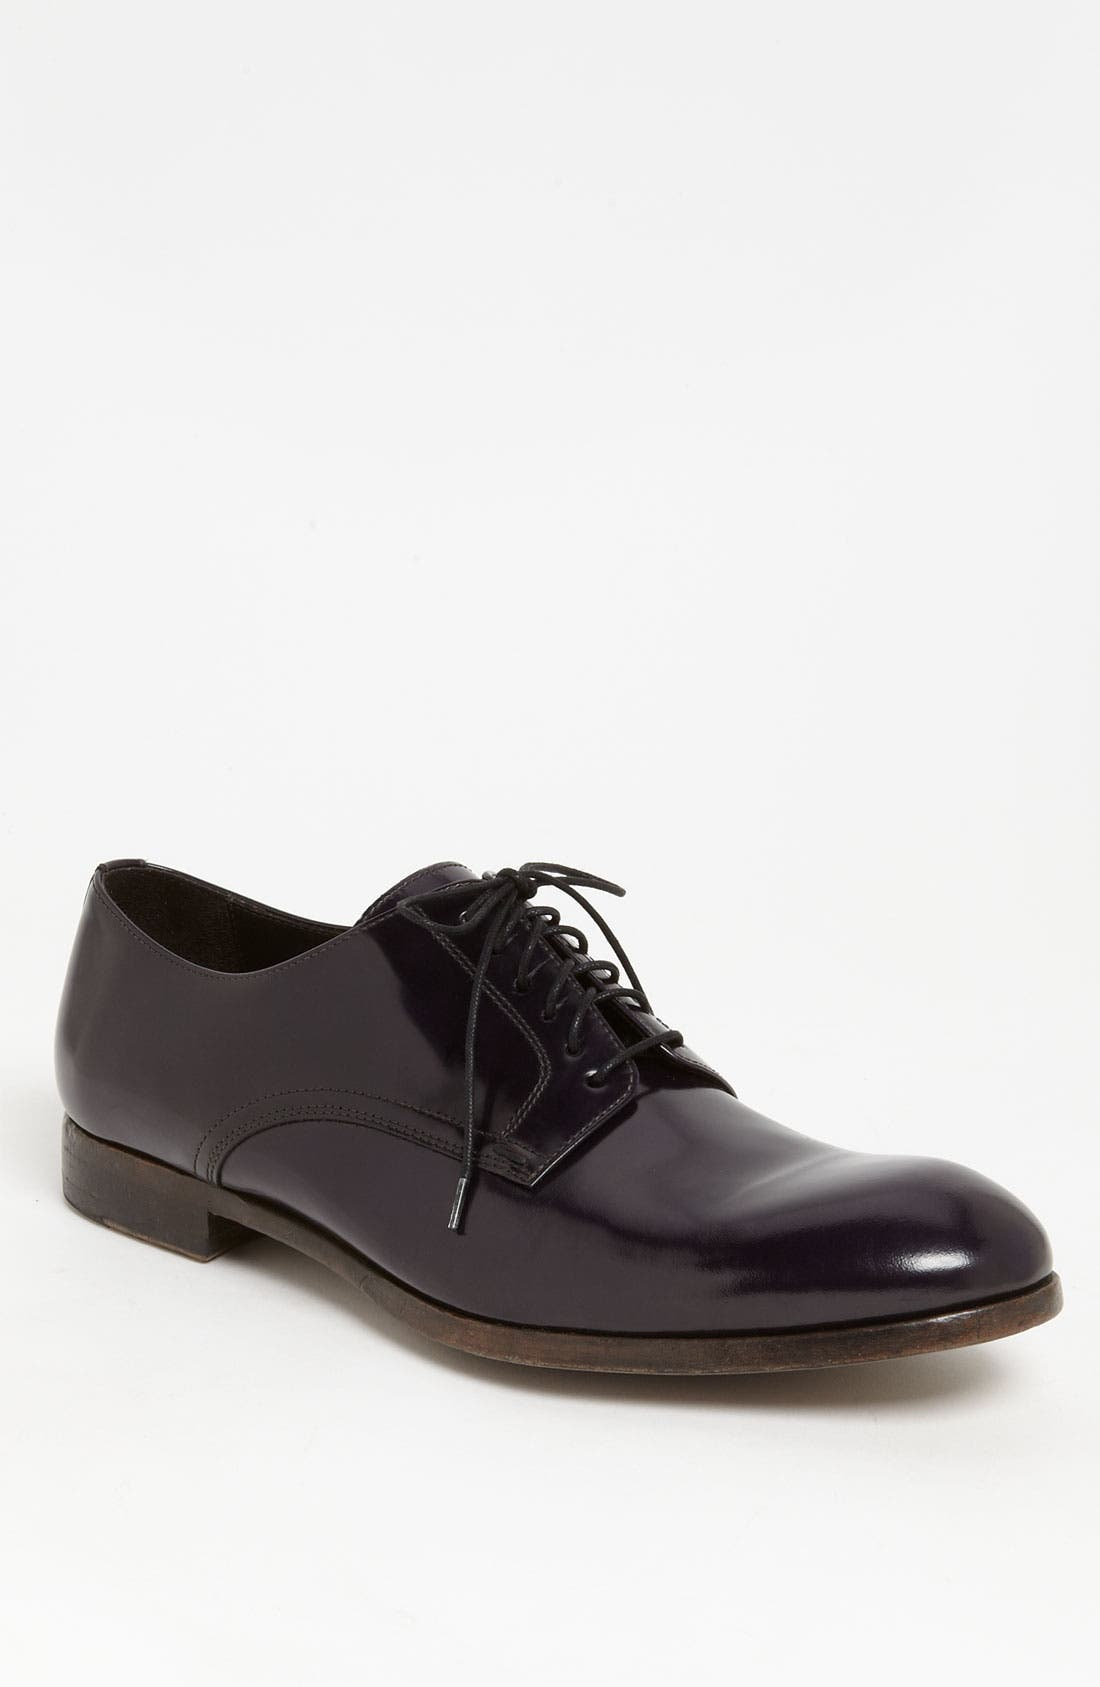 PAUL SMITH, 'Chagall' Plain Toe Derby, Main thumbnail 1, color, 500